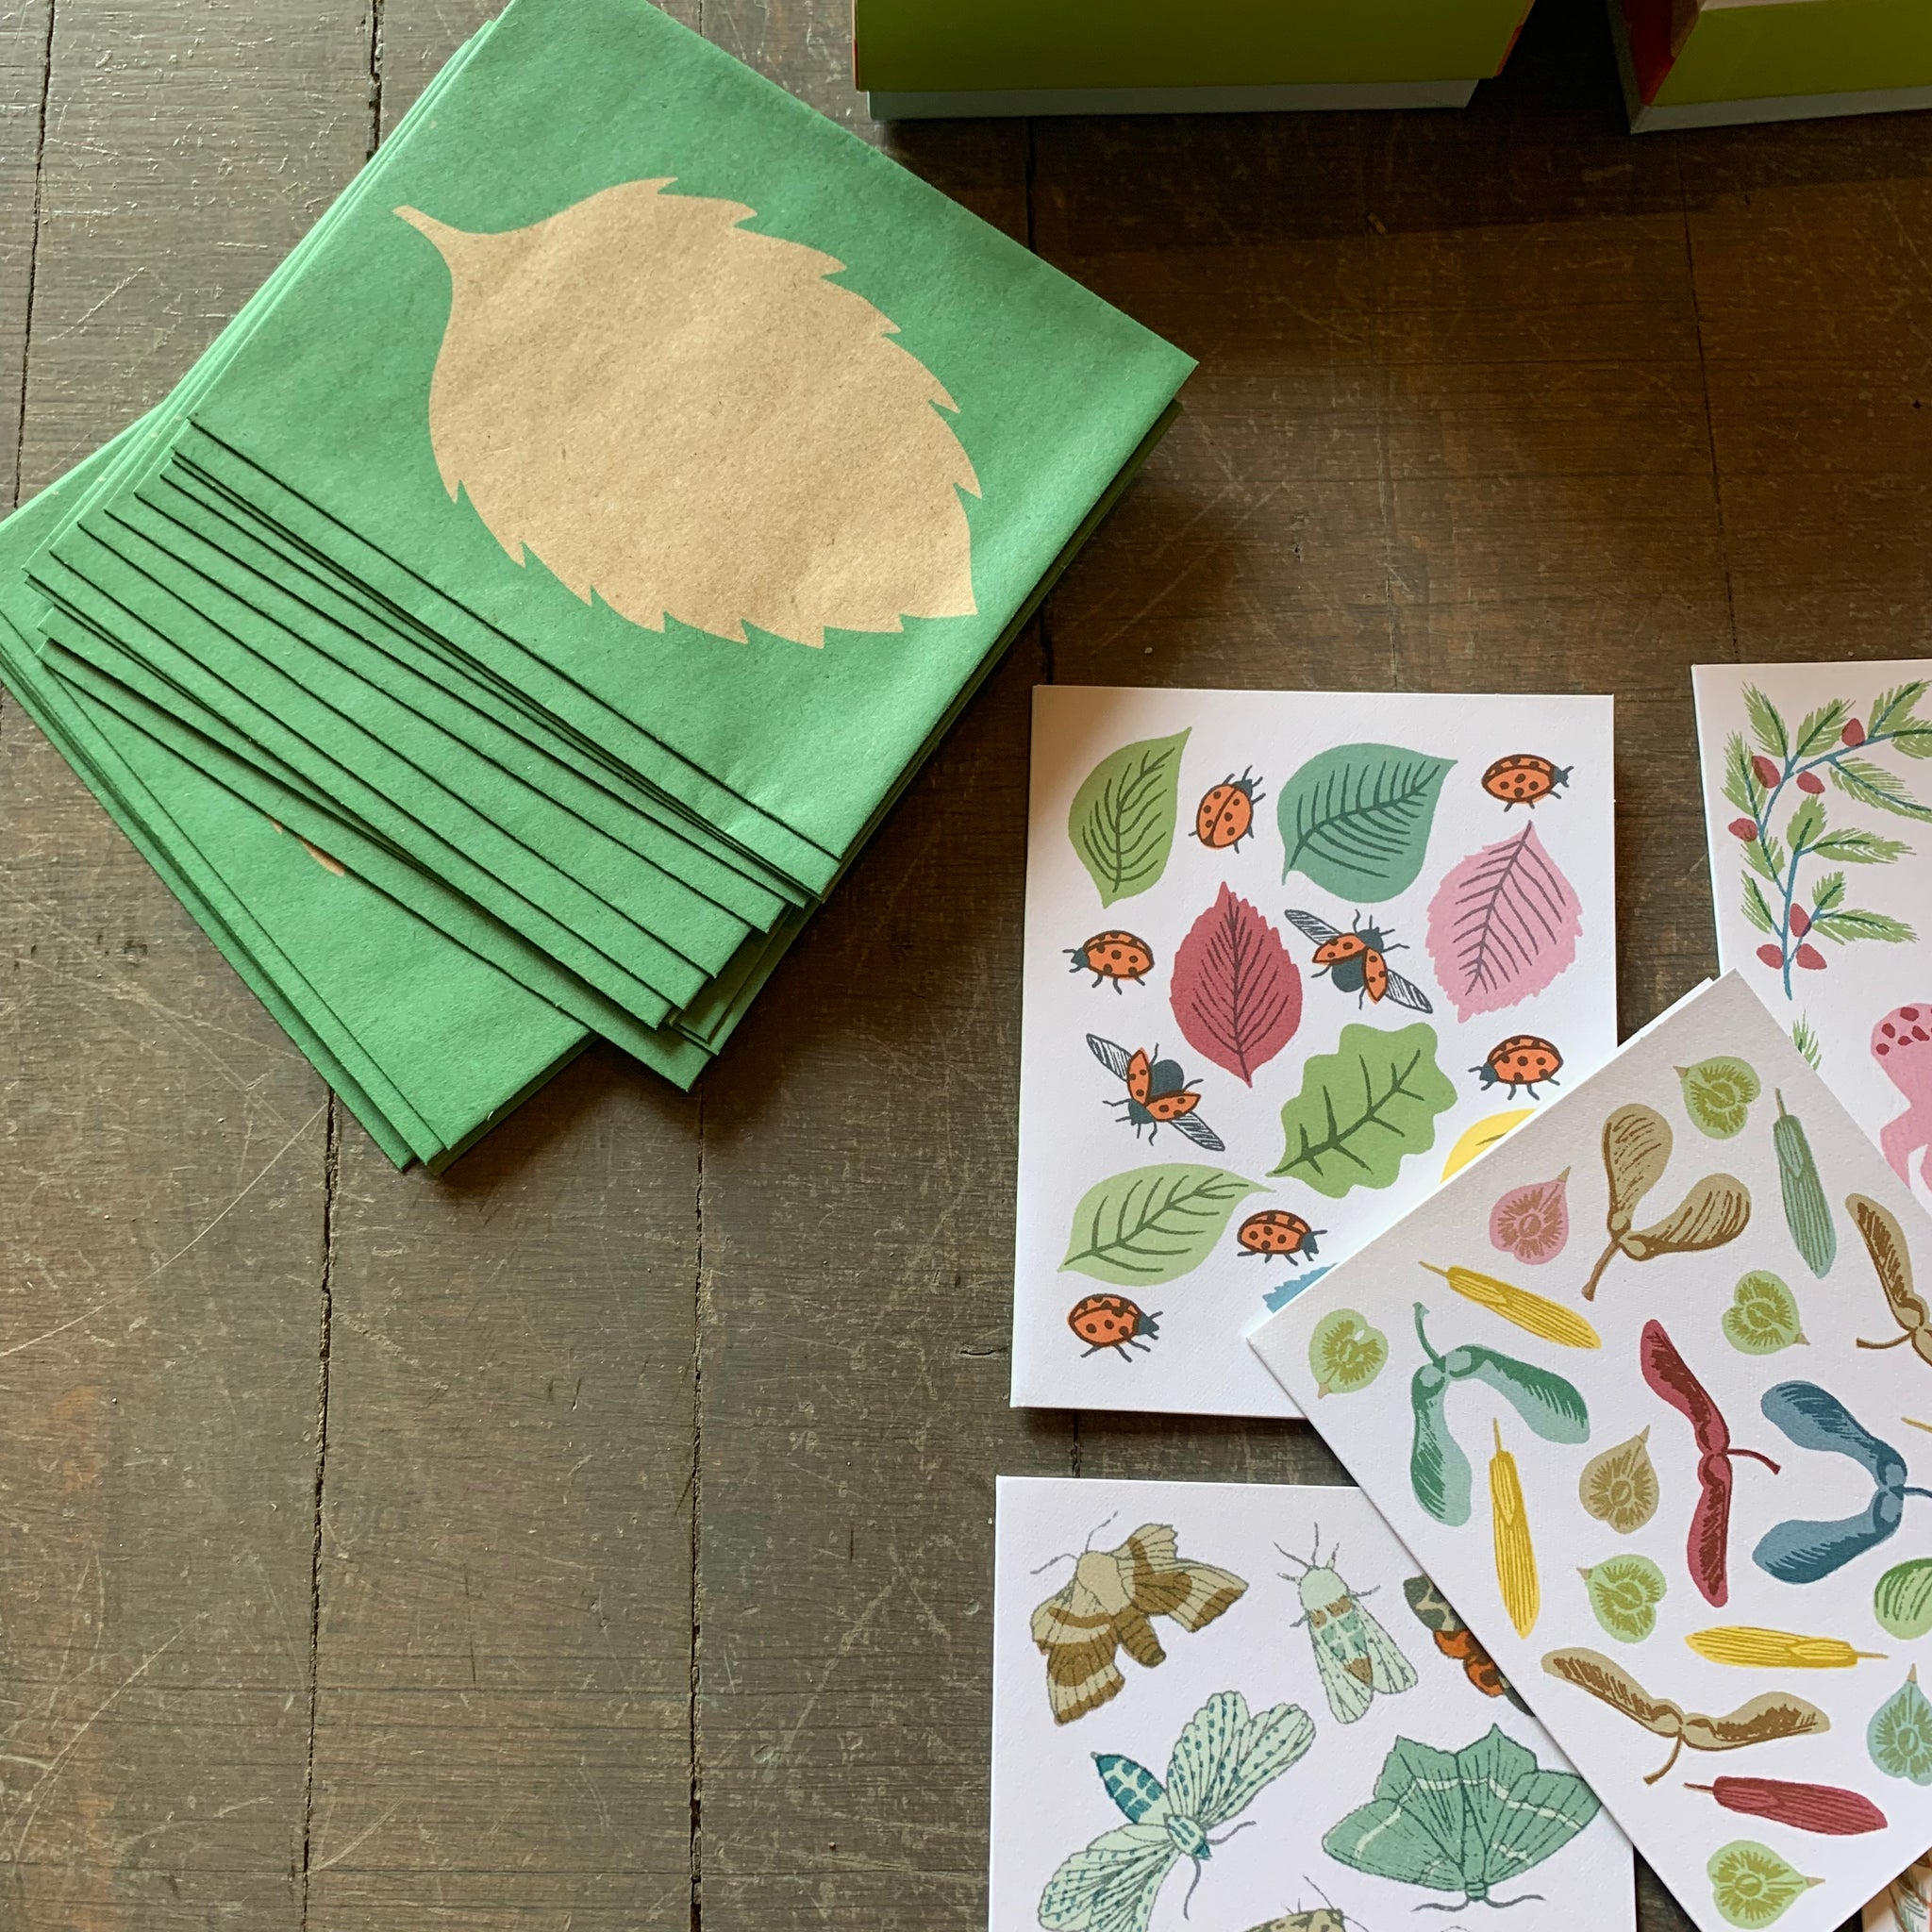 New Leaf Notecards by Sukie - Upstate MN